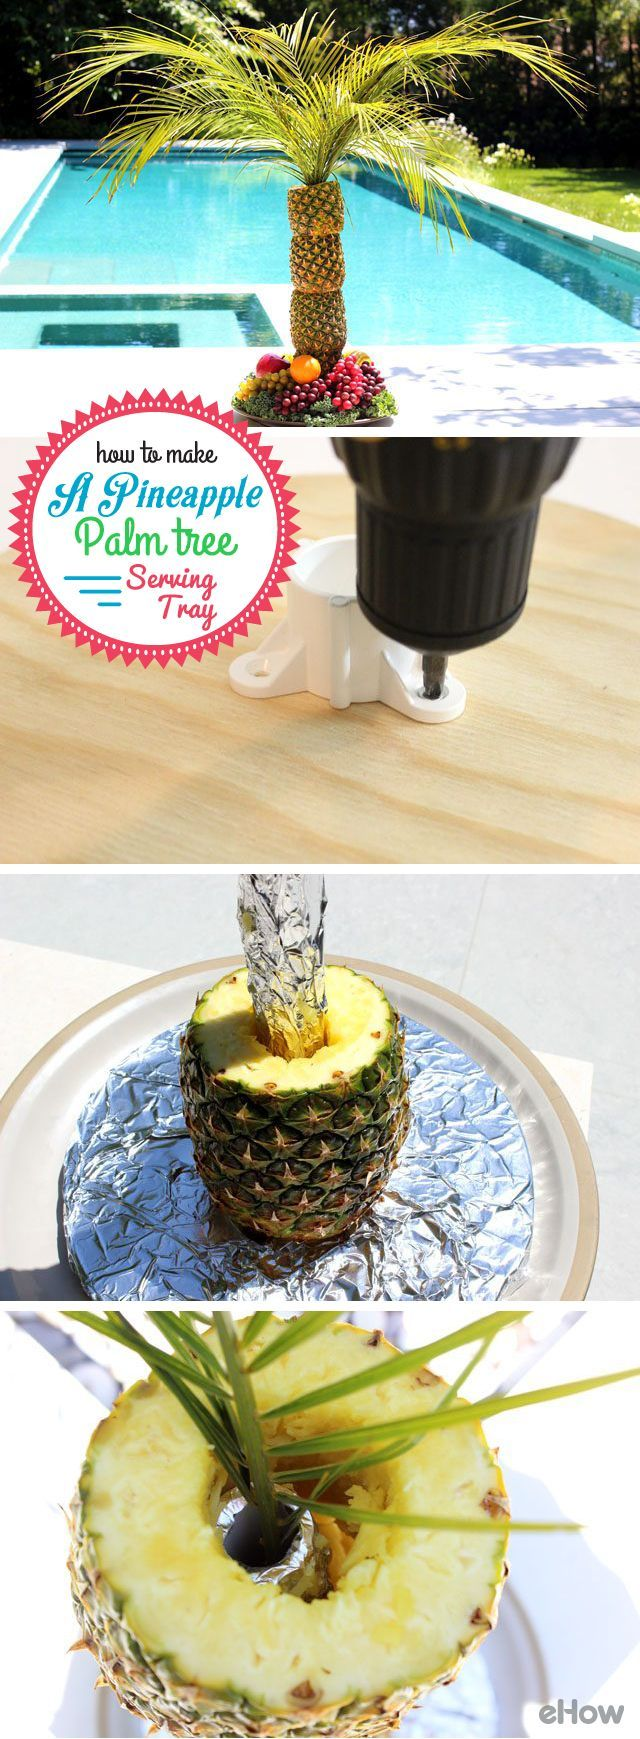 Amazing! DIY your own pineapple palm tree as the main centerpiece at any outdoor party, including tropical-themed luau's, showers, birthday parties and any summer occasion! Isn't this just beautiful? http://www.ehow.com/how_4530007_make-pineapple-palm-tree-serving.html?utm_source=pinterest.com&utm_medium=referral&utm_content=inline&utm_campaign=fanpage